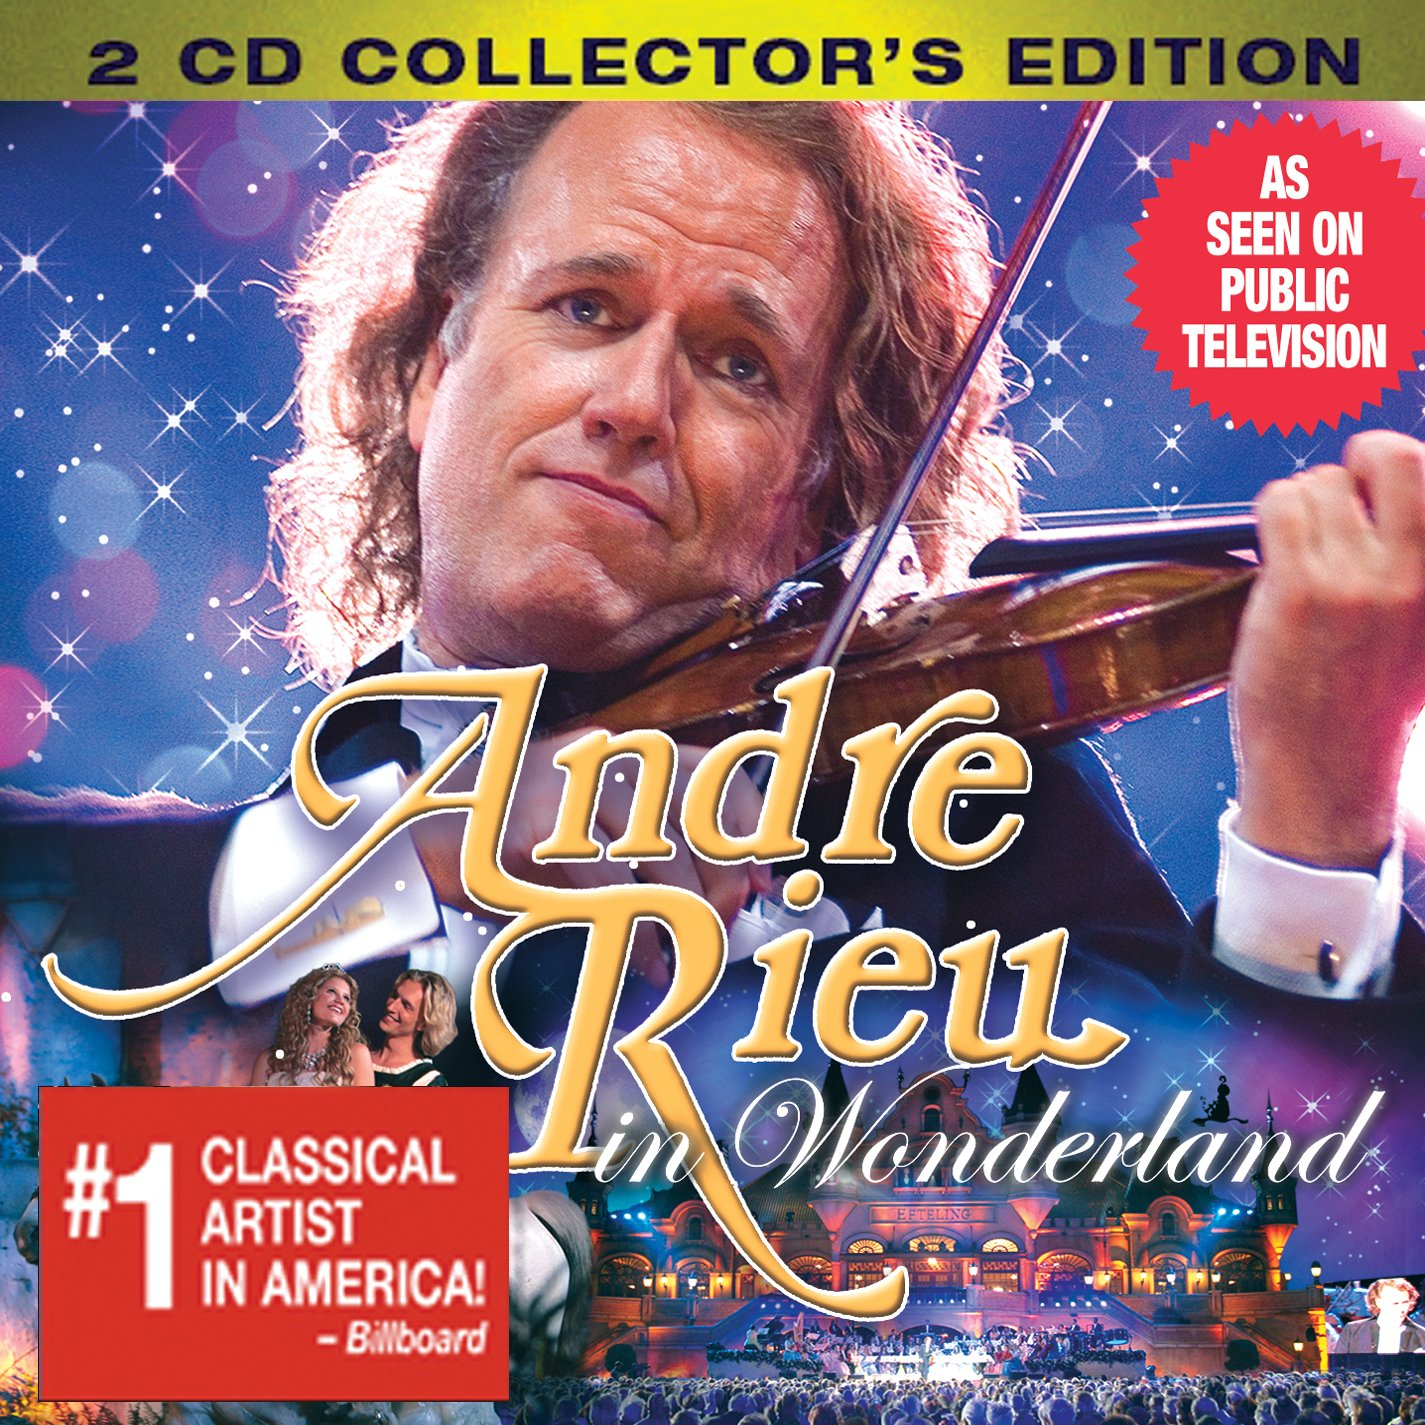 In Wonderland [2 CD Collector's Edition]